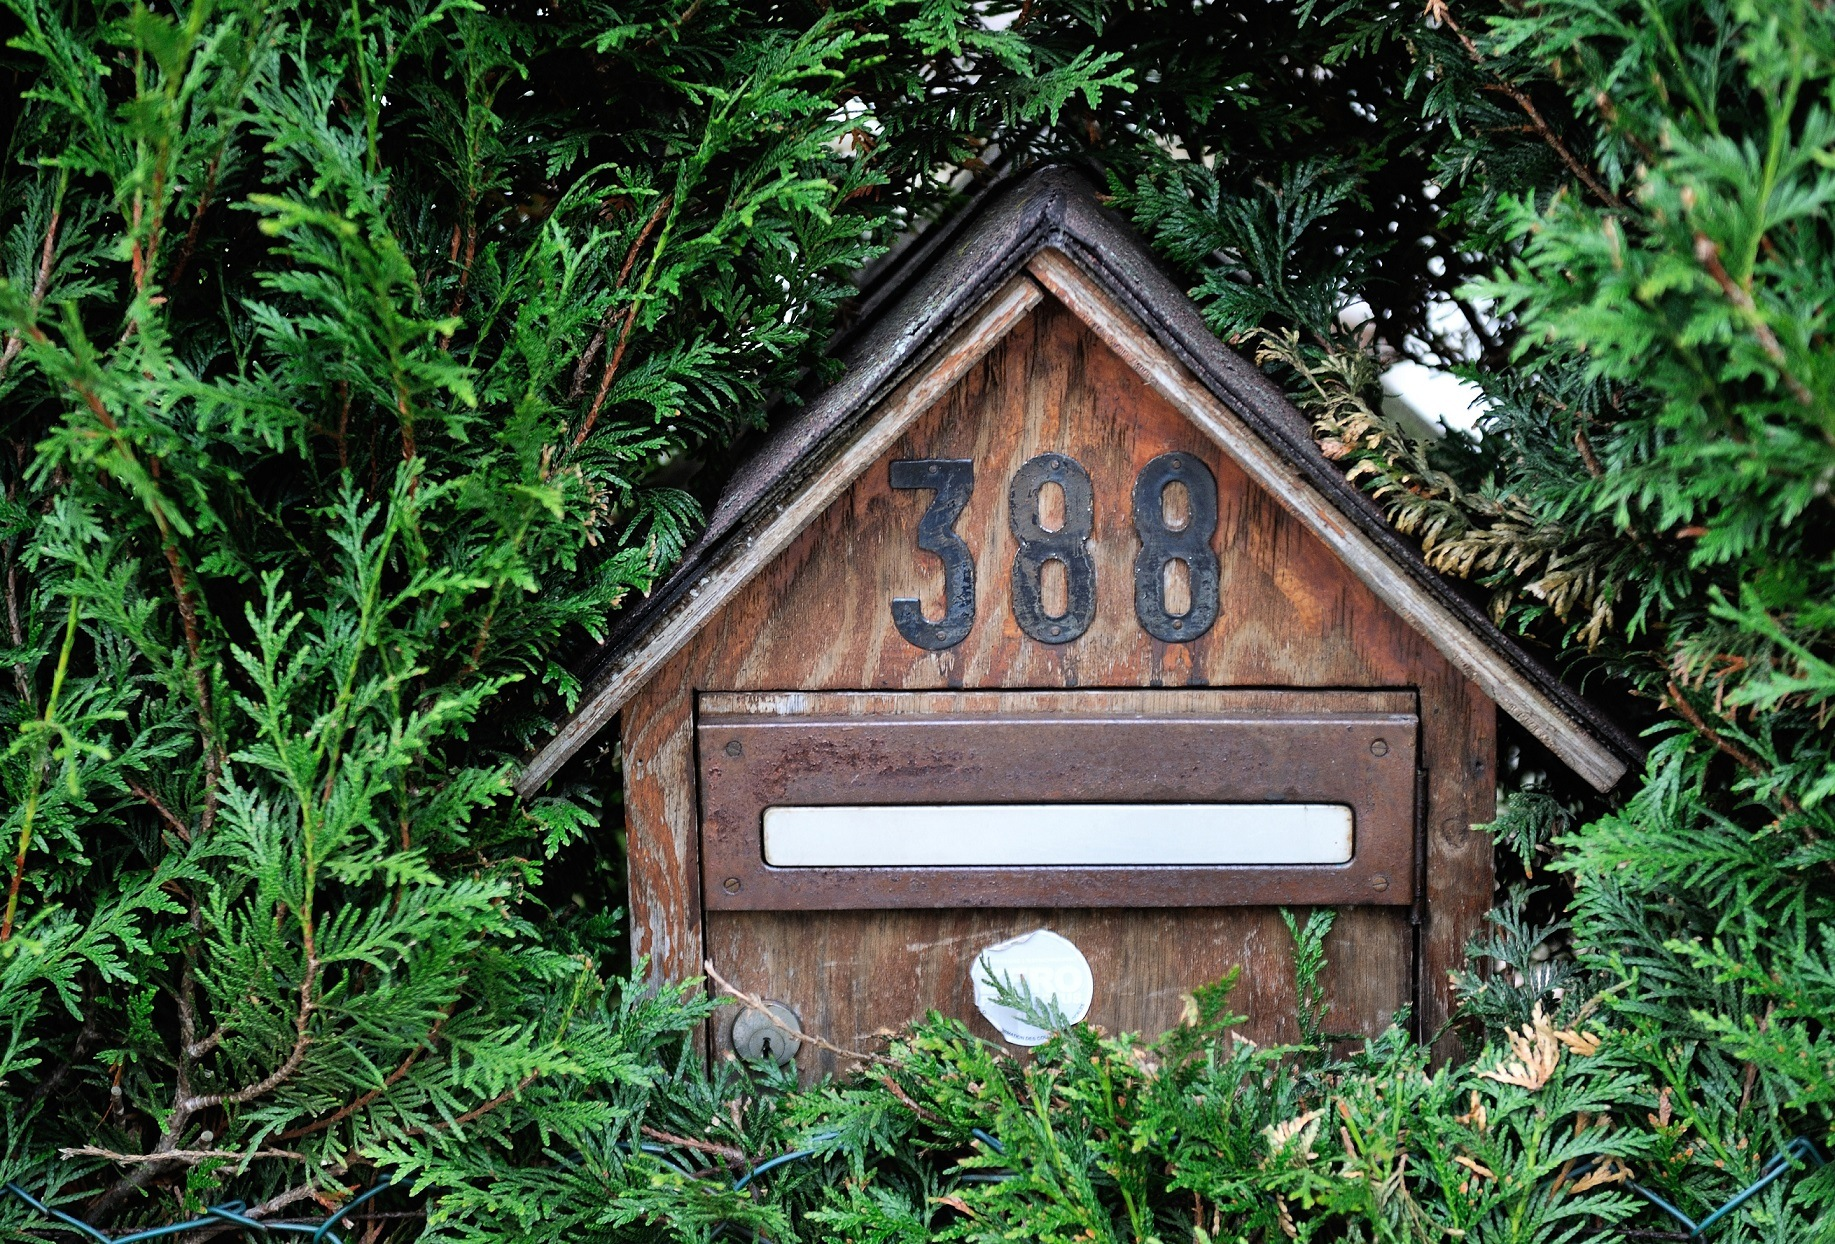 Wooden mailbox with numbers